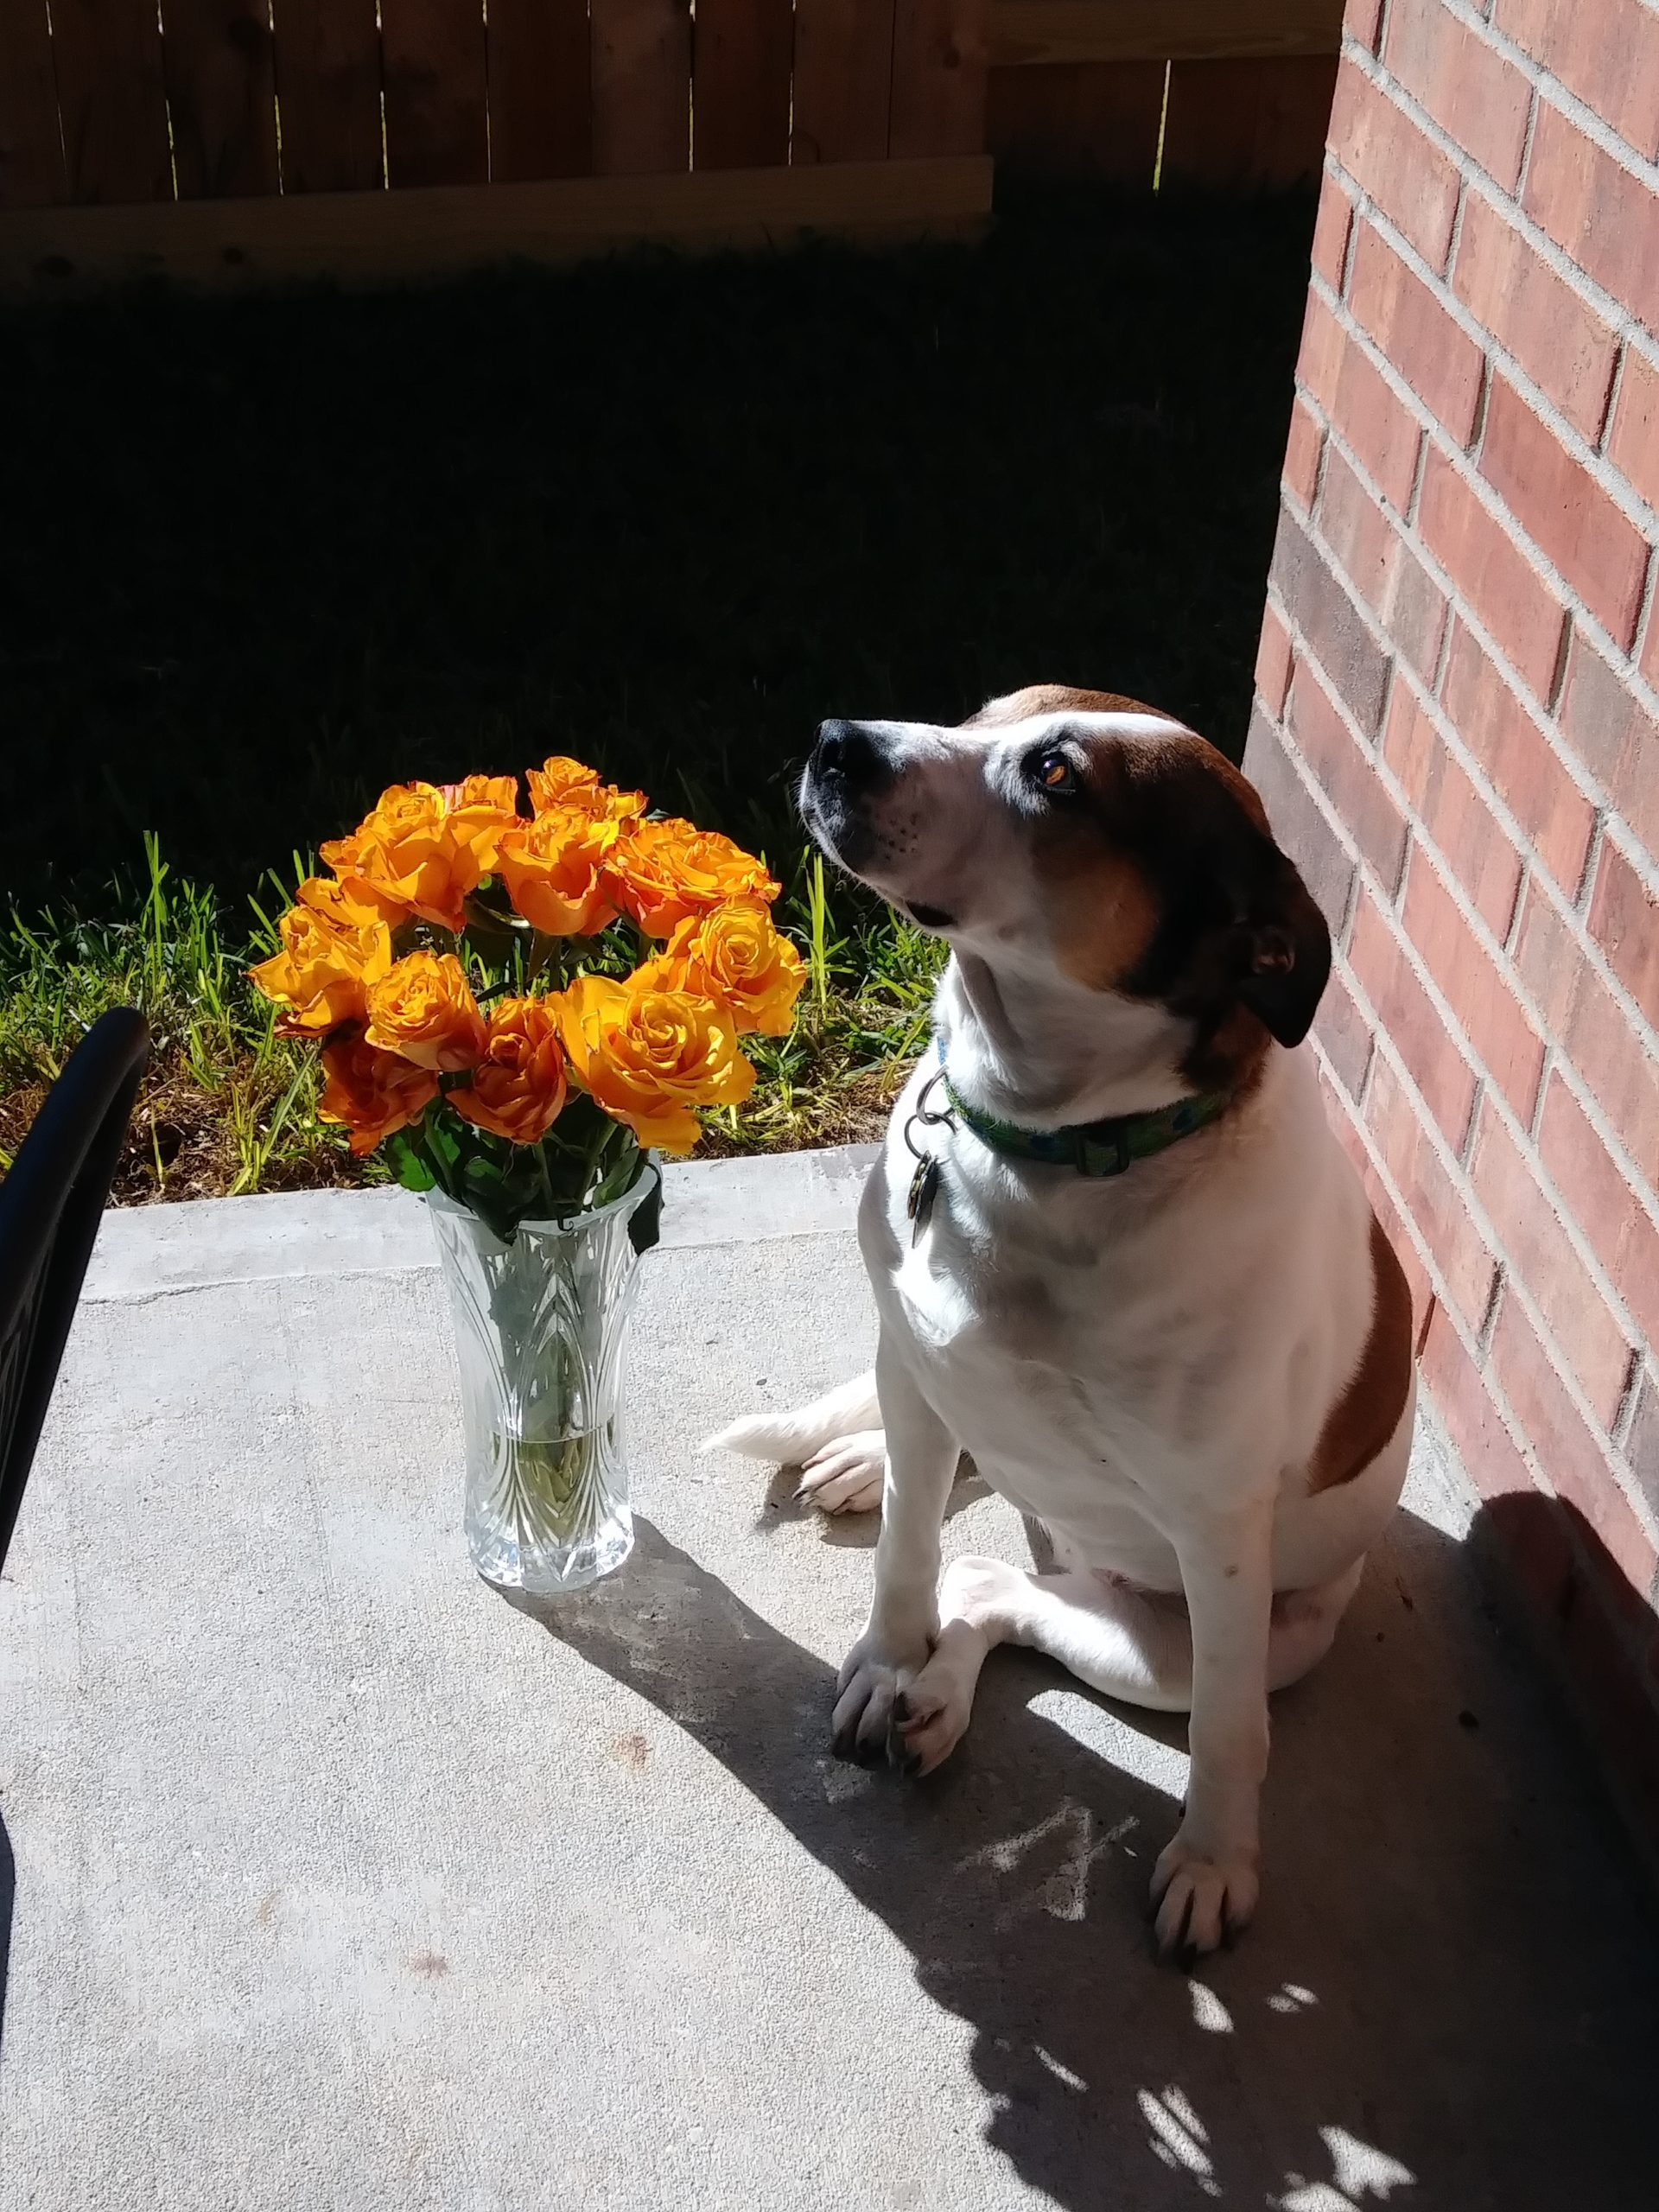 A brown and white dog sitting in the sunshine next to a vase of flowers.